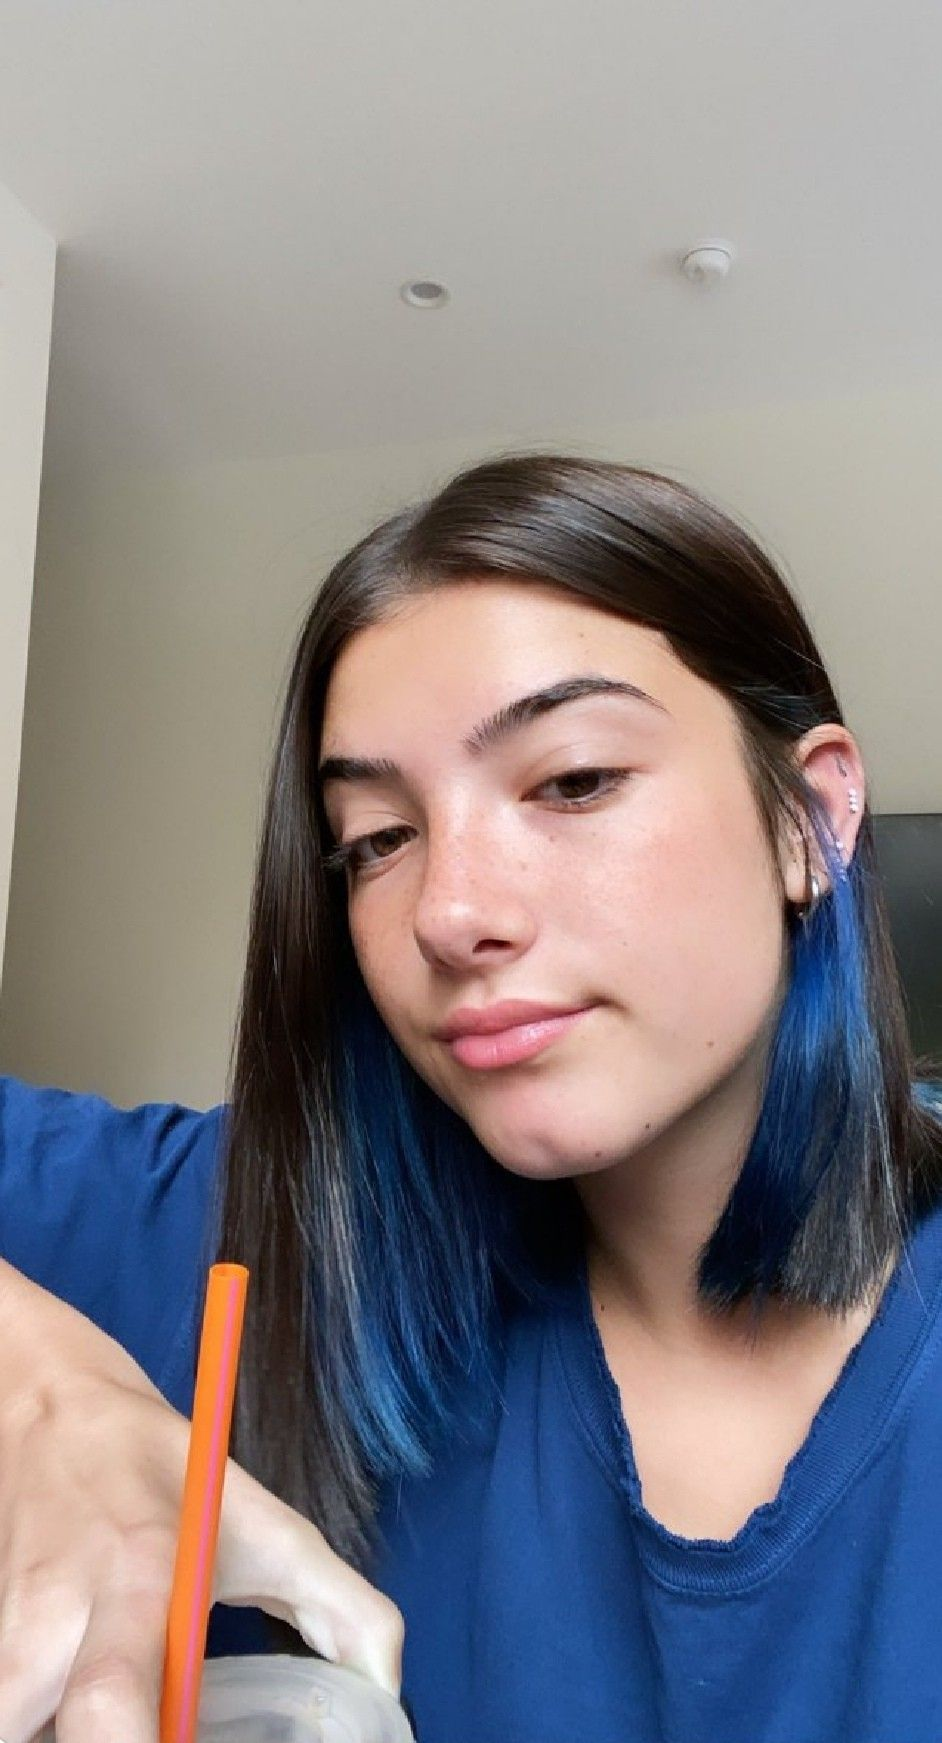 Pin by 𝙿𝚛𝚒𝚜𝚑𝚊 𝙶𝚞𝚗𝚐𝚊𝚑 on Charli in 2020 | Blue hair, The